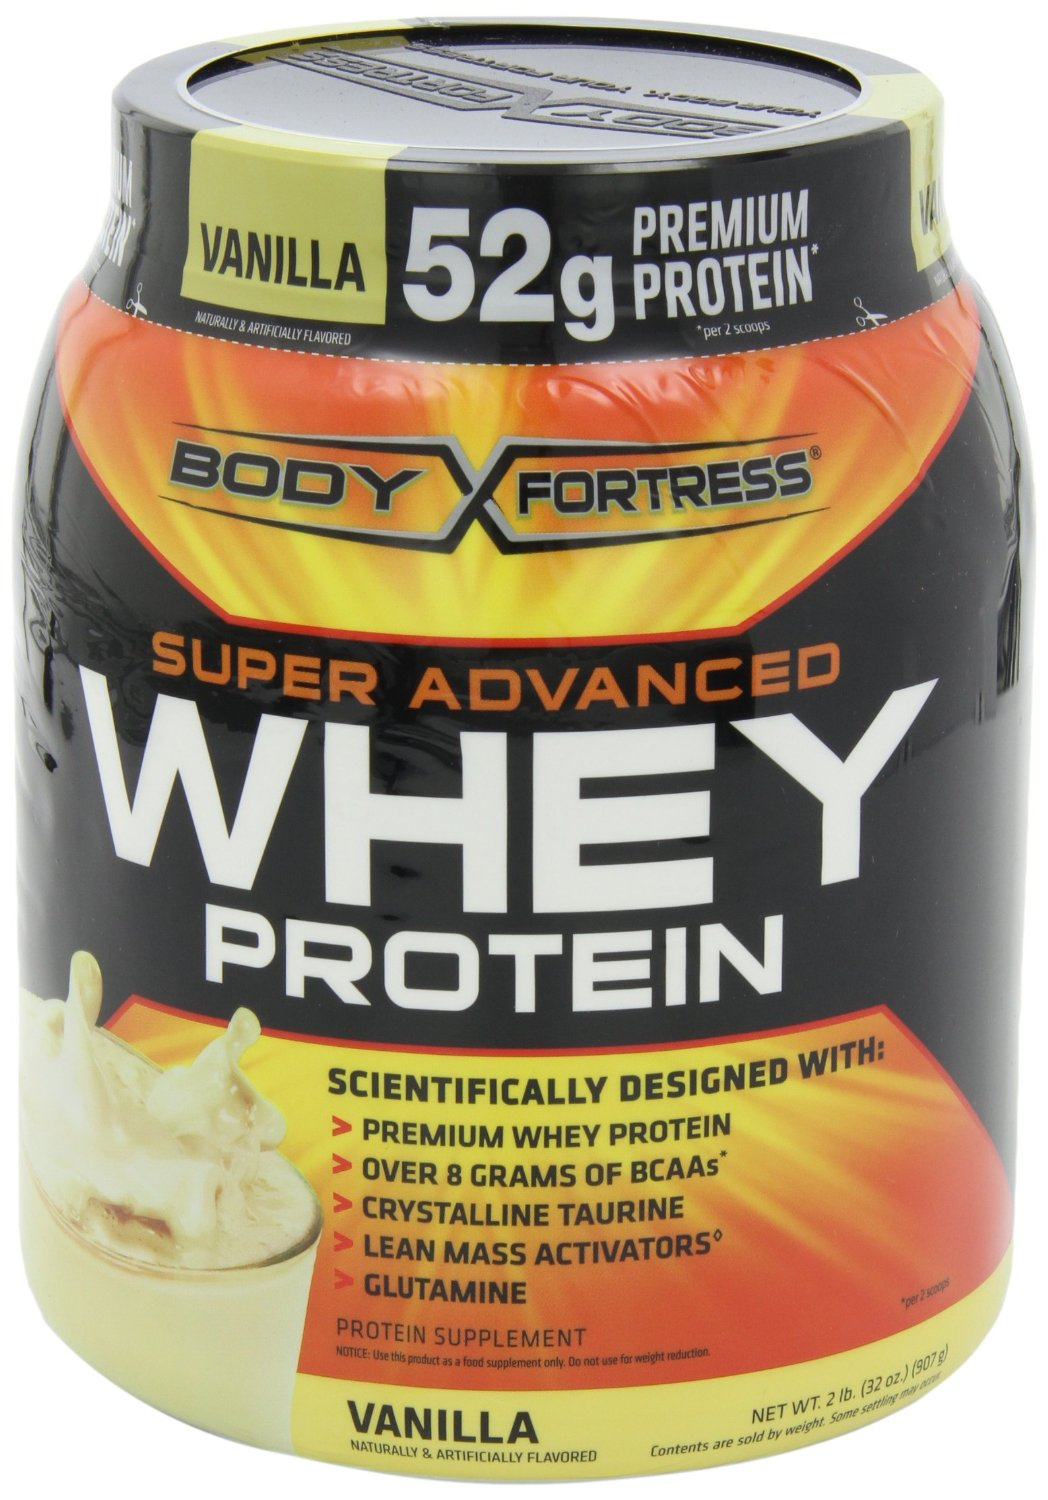 How To Use Protein Powder For Weight Gain?